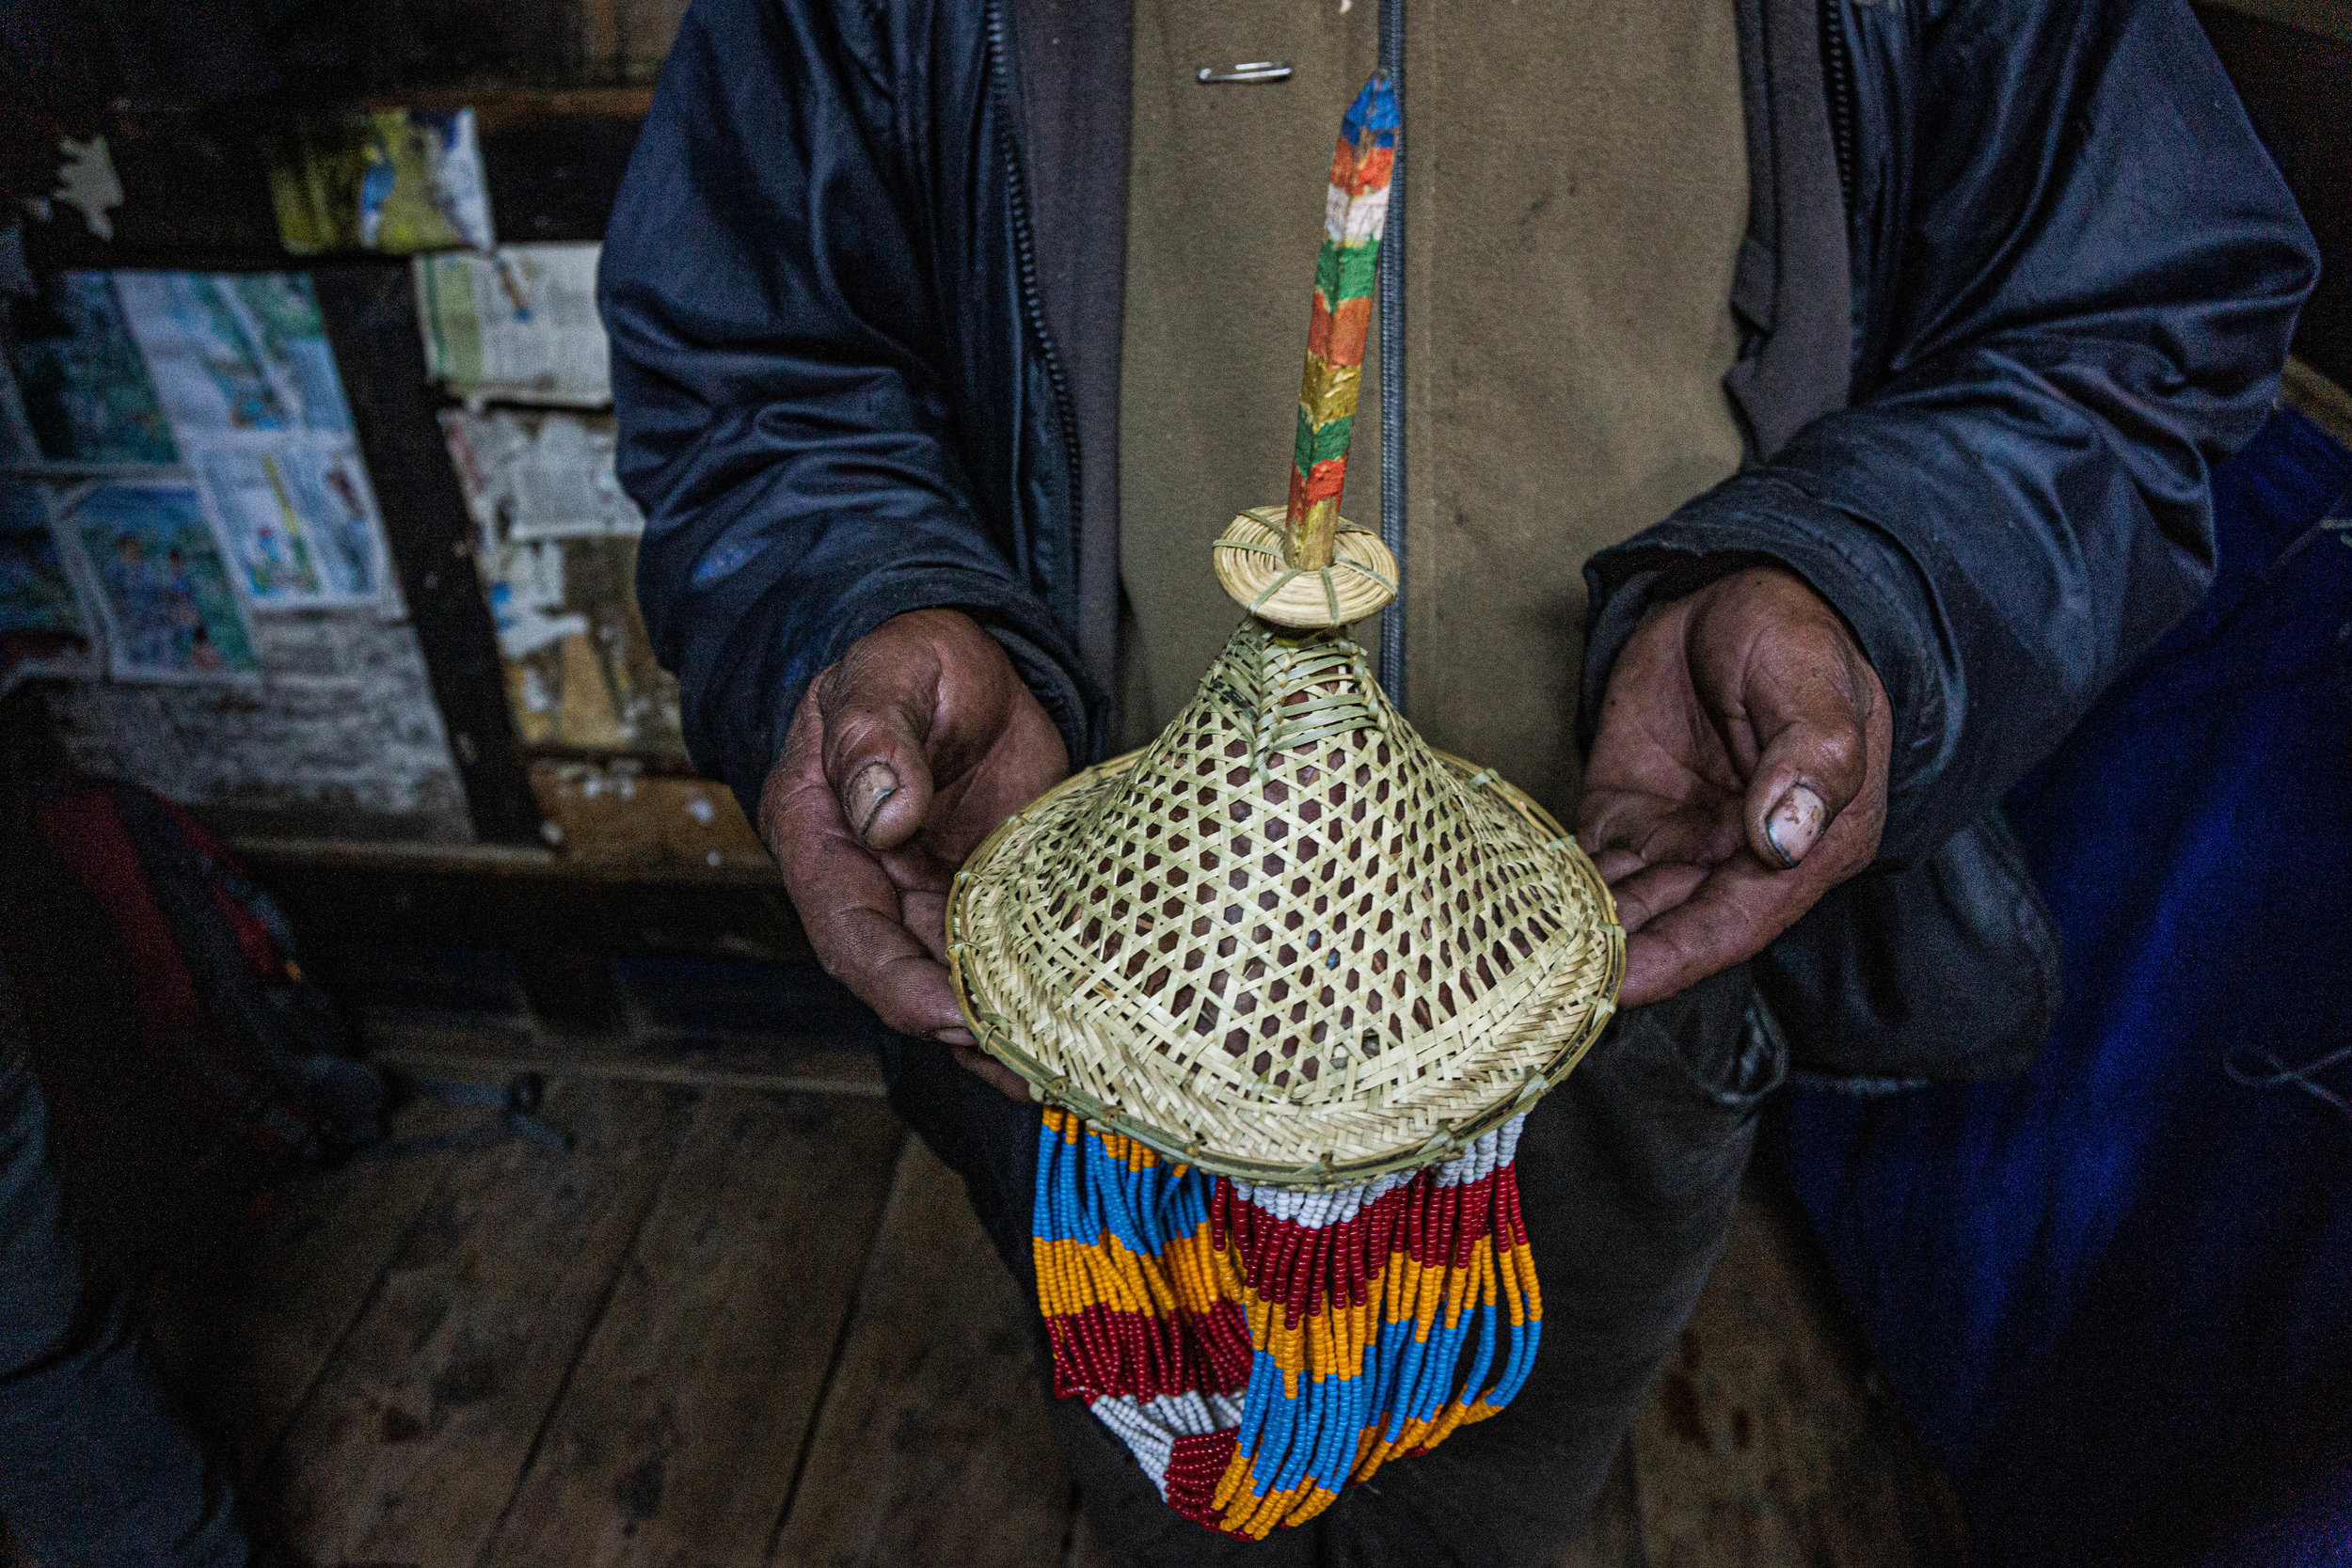 The final product of the traditional hat, belo